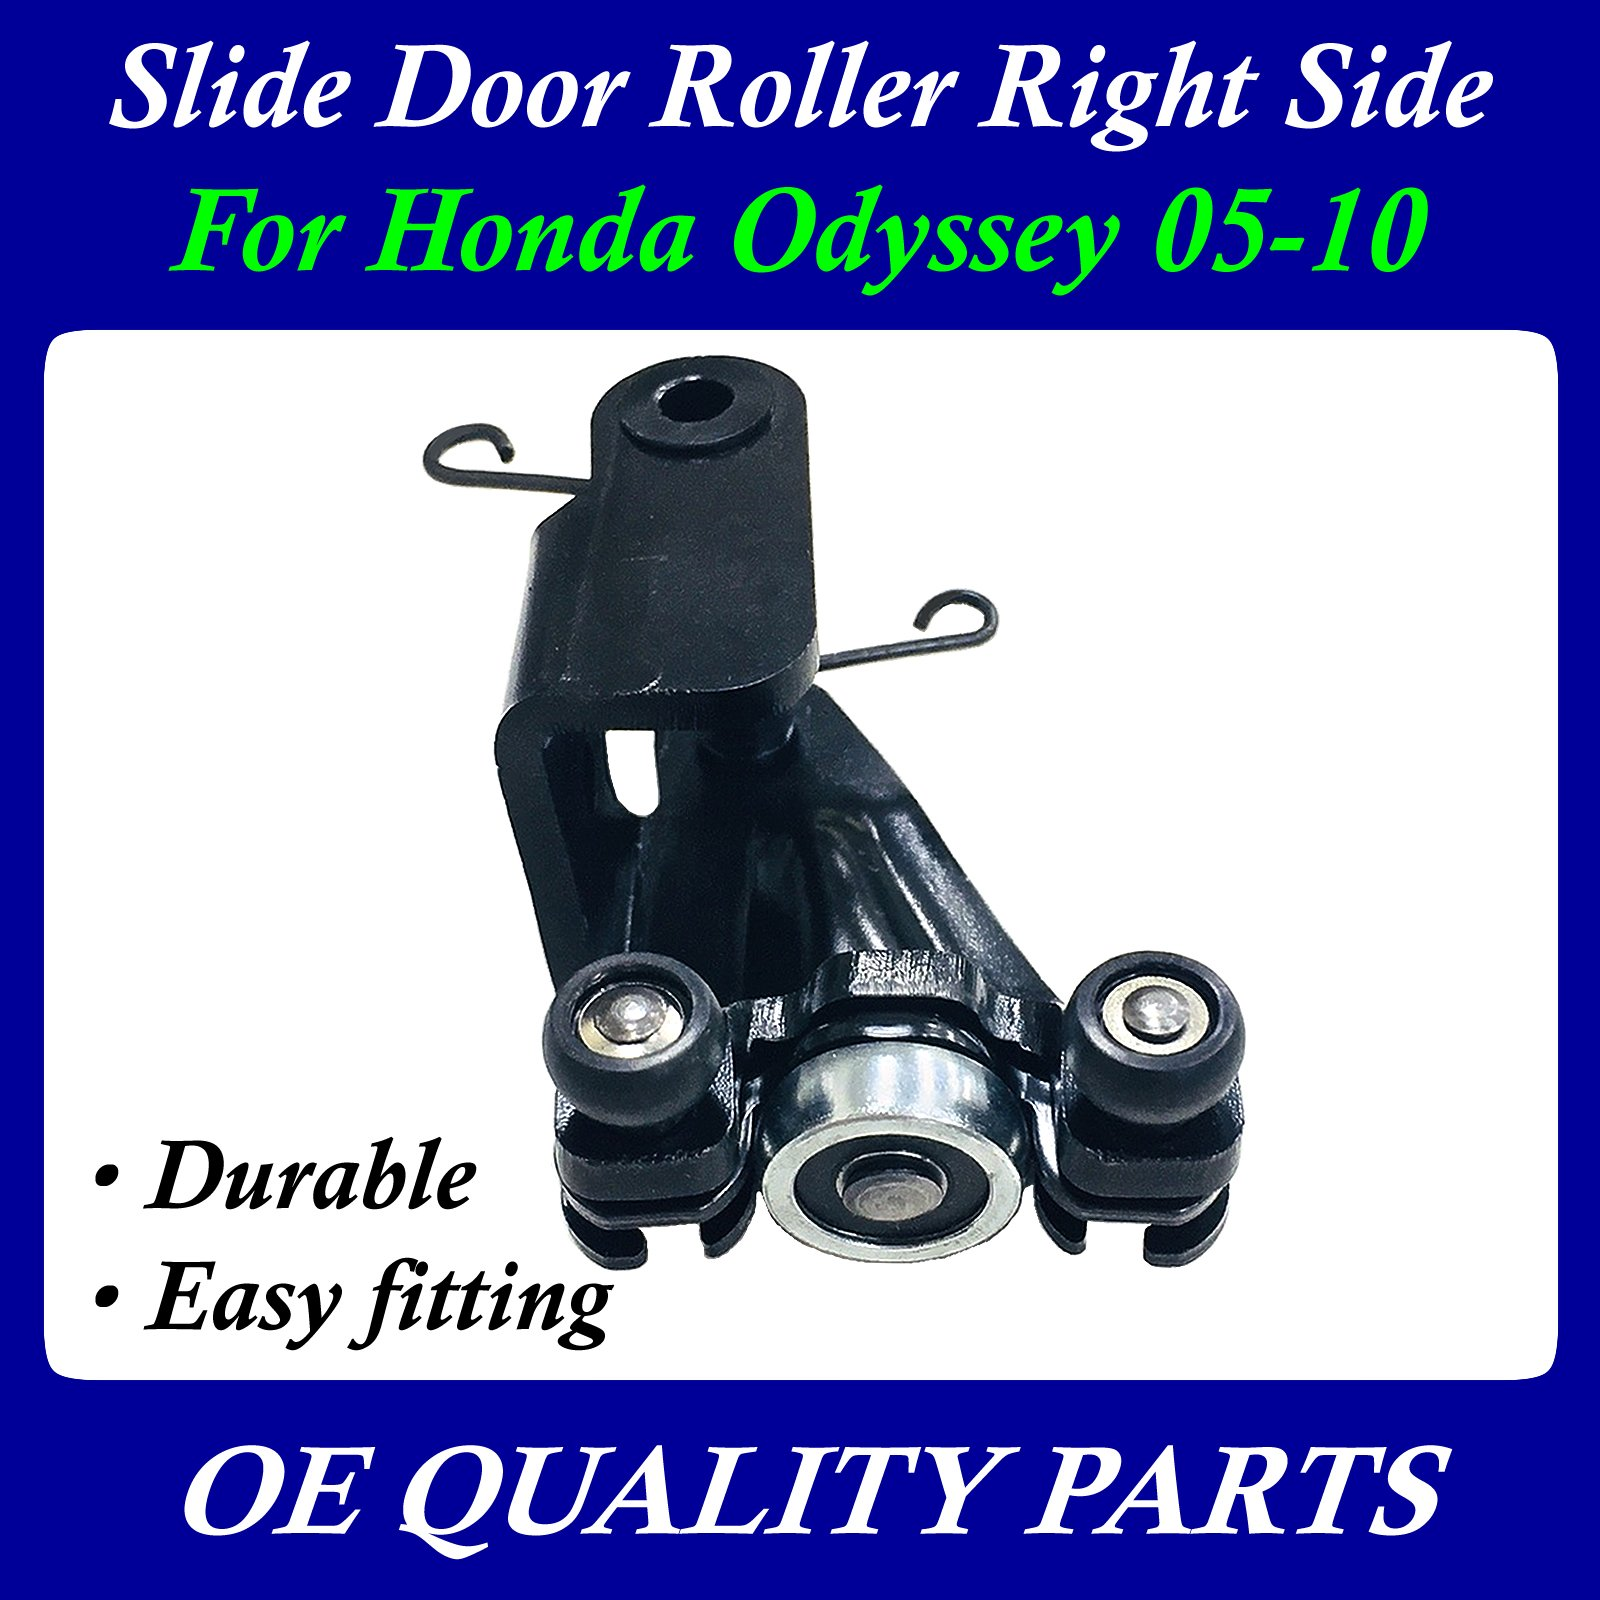 Sliding Door Center Roller Right RH For Odyssey 05-10 72521-SHJ-A21 924-129